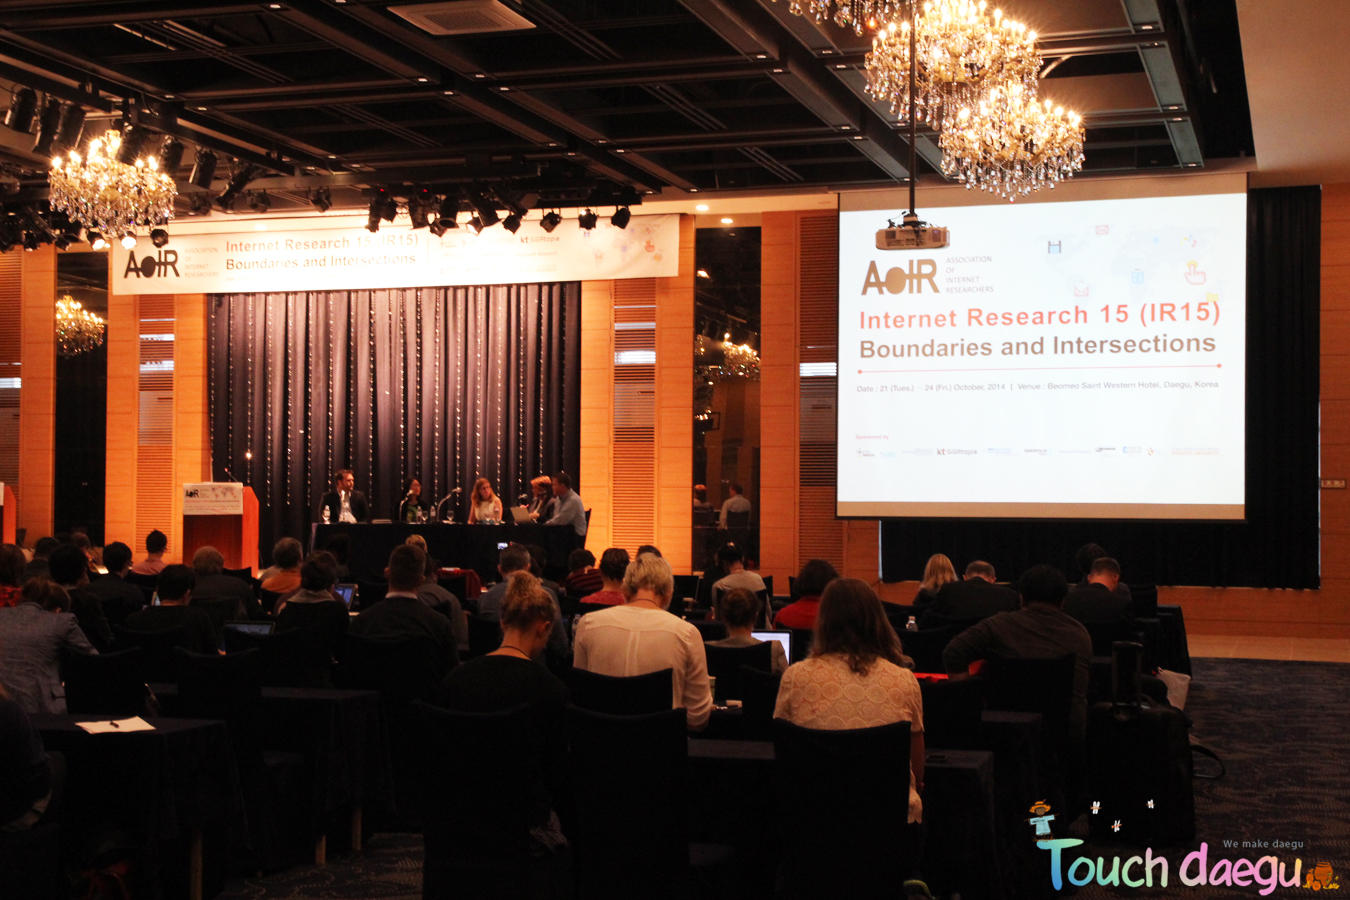 The experts on internet & online contents are in plenary of AoIR 2014 annual meeting